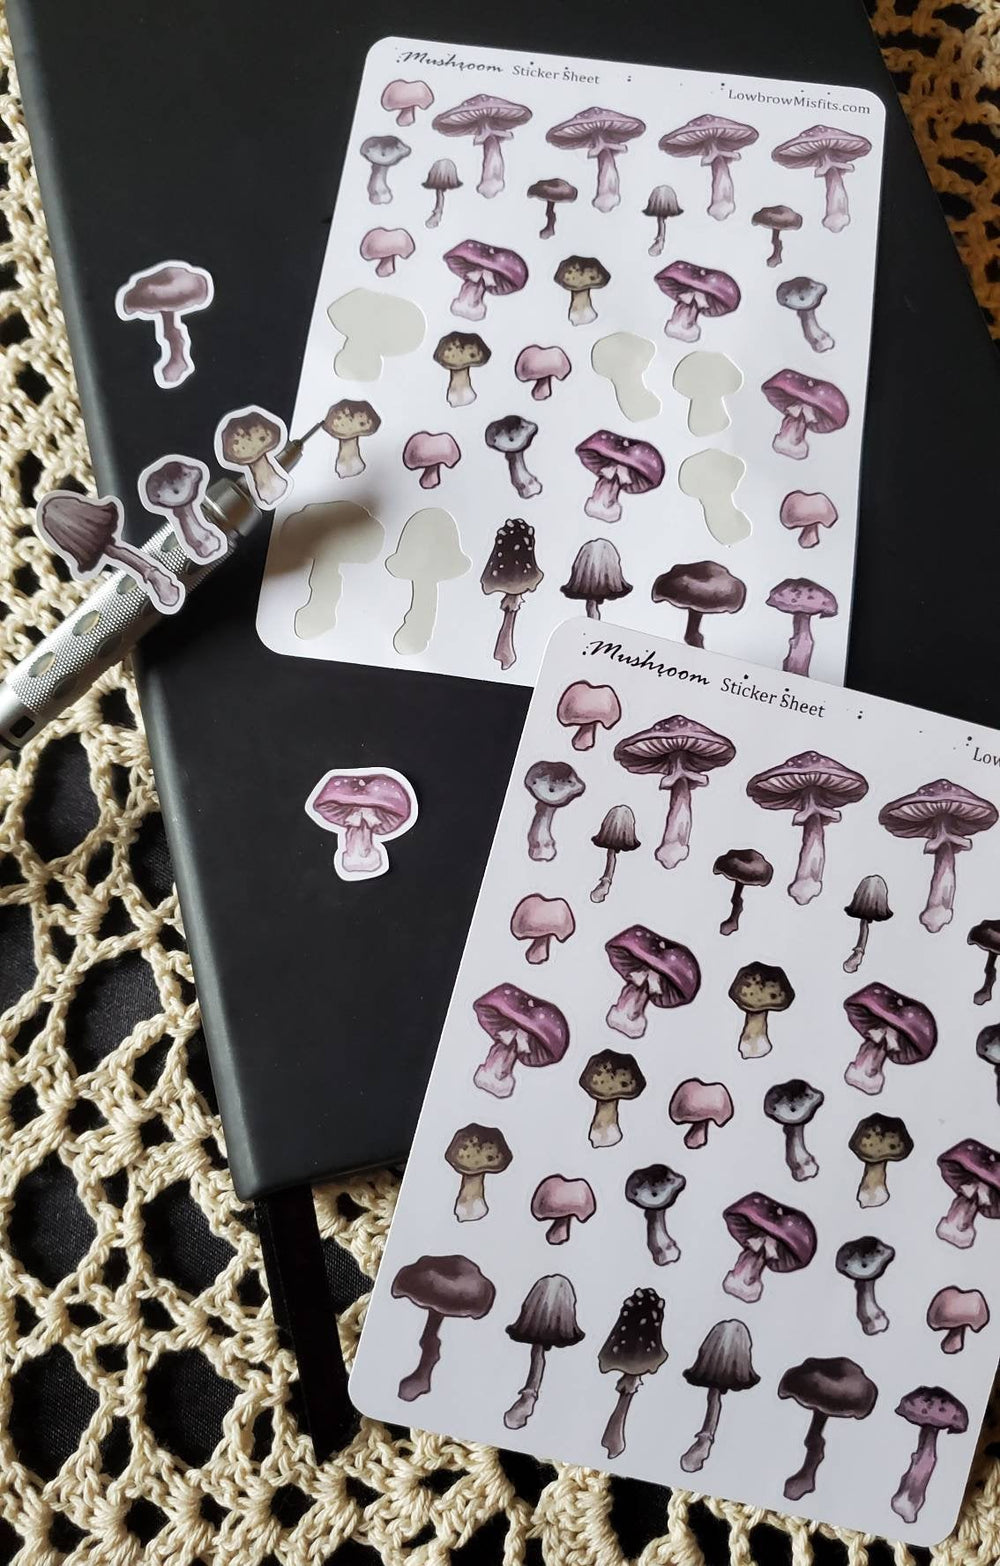 MUSHROOM STICKER sheet -Lowbrow misfits White Stag Art